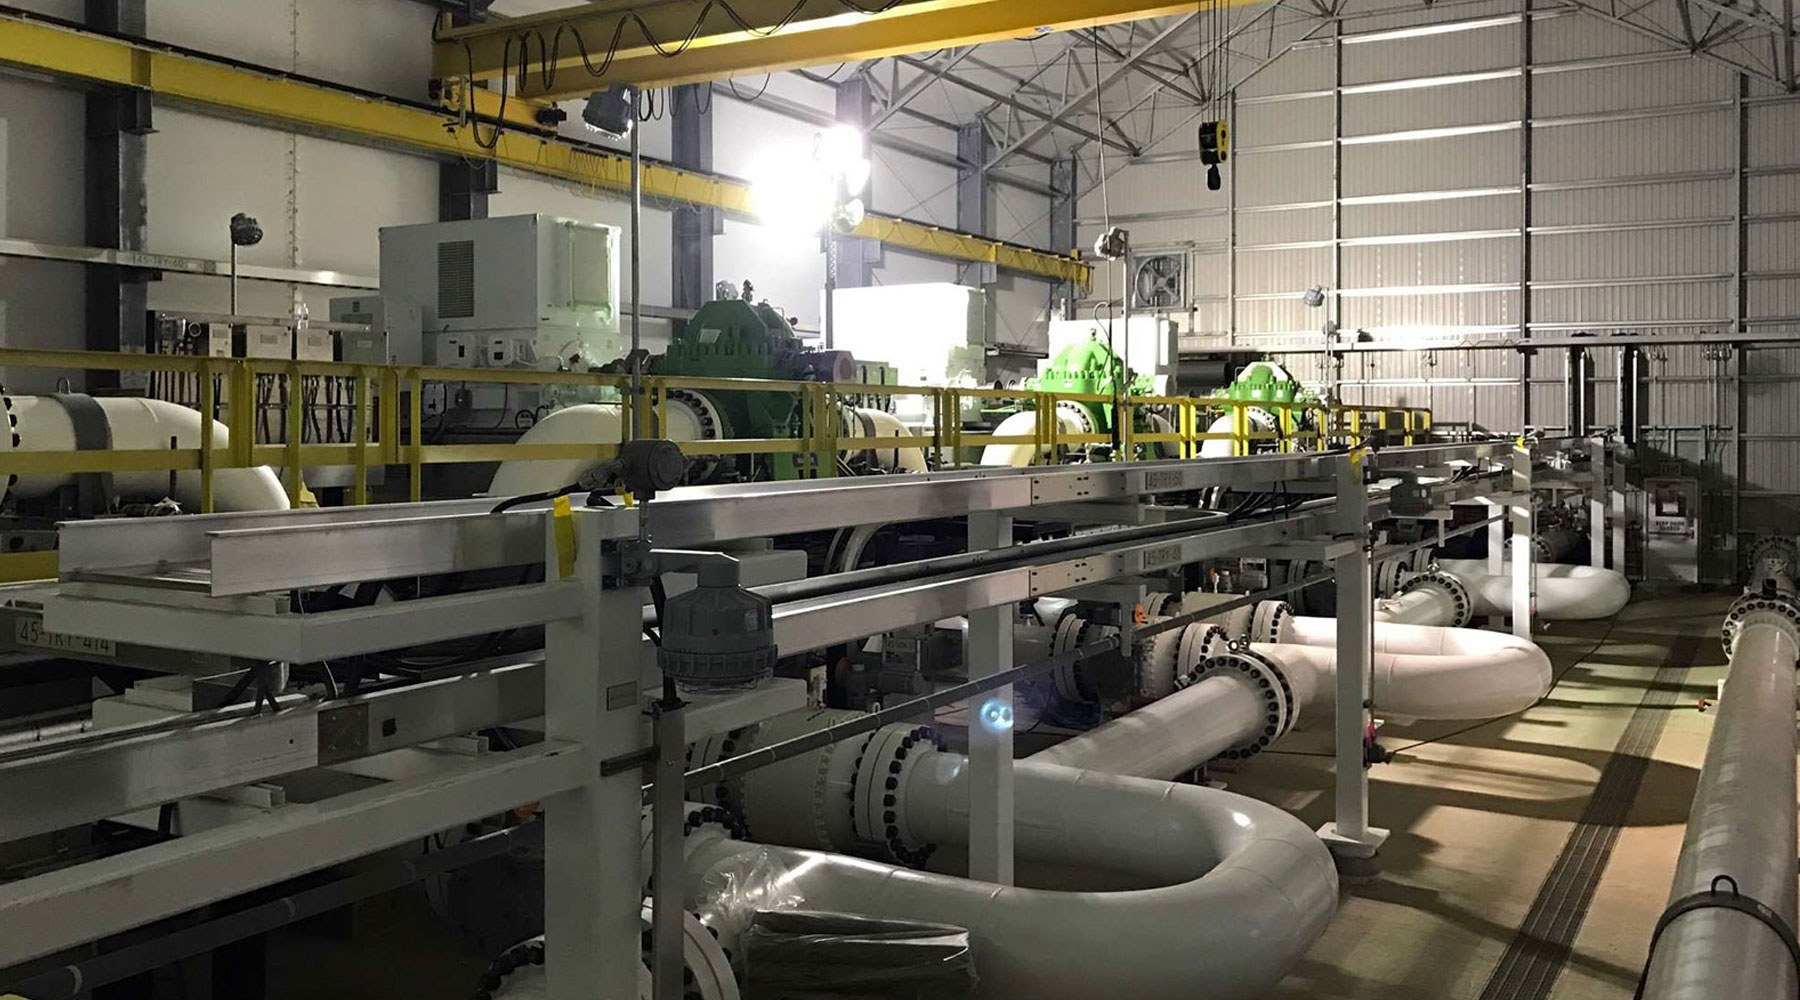 Picture of pipes, equipment and machinery inside of a workshop